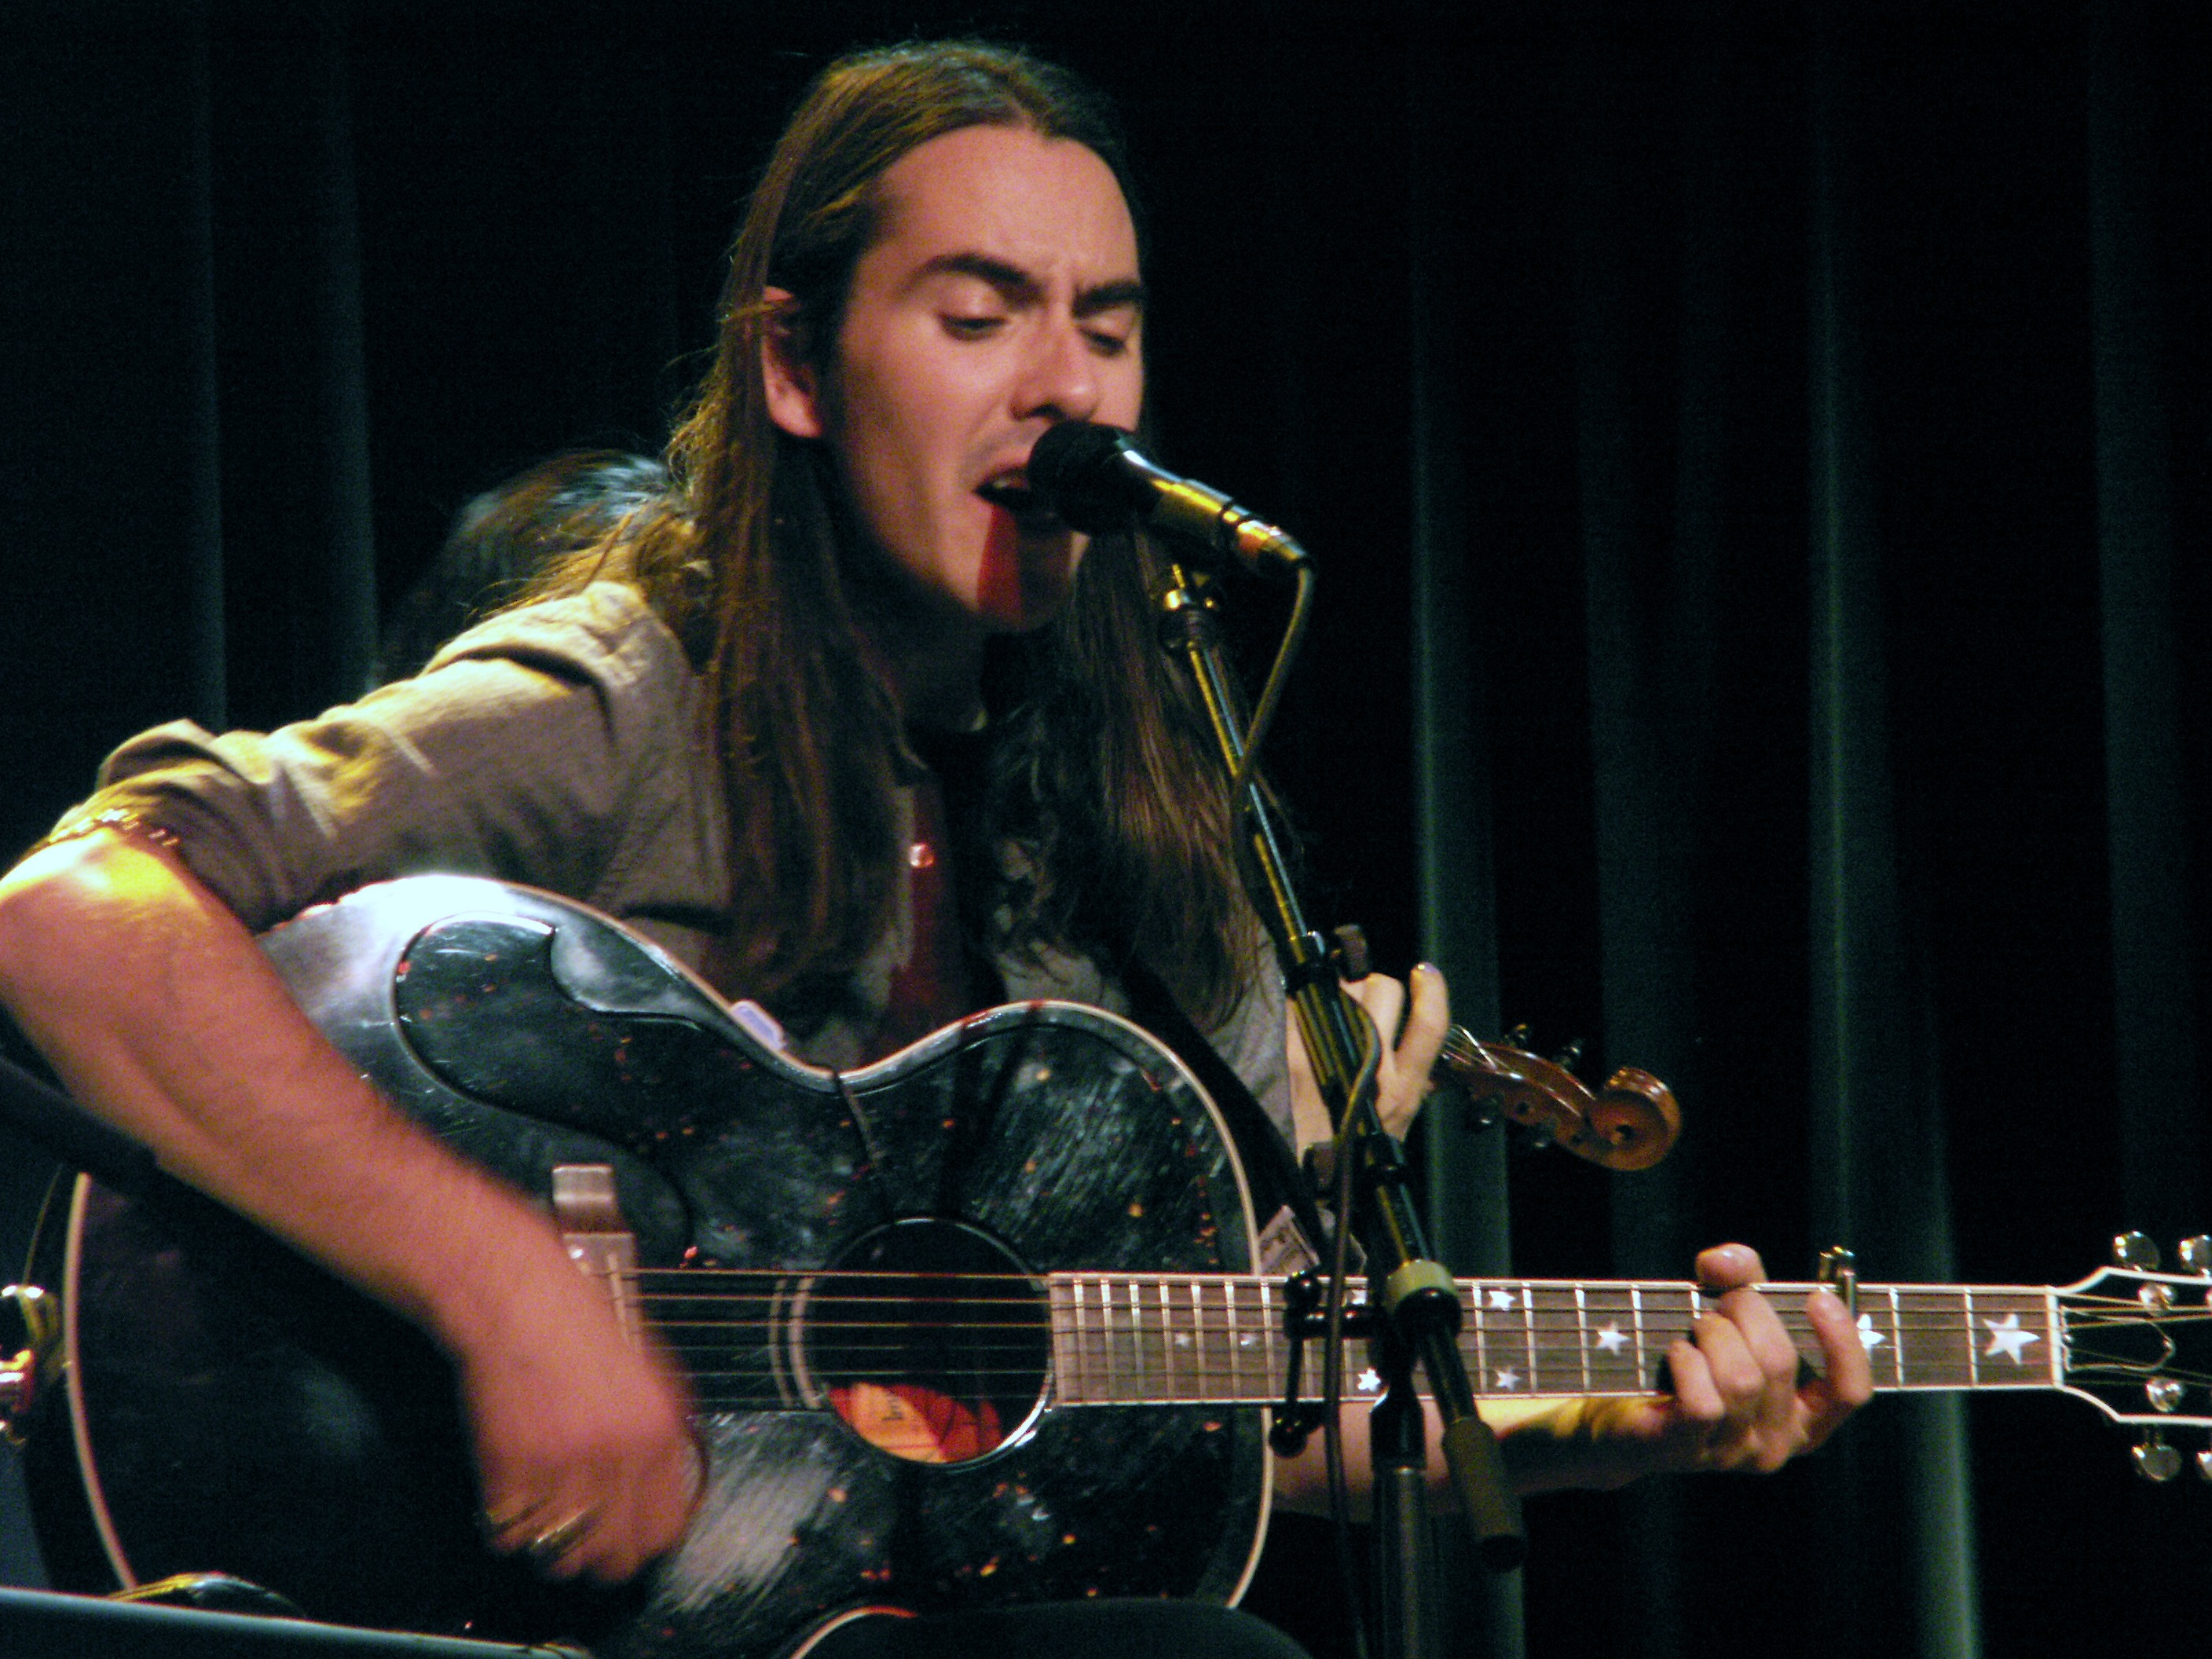 The 40-year old son of father George Harrison and mother Olivia Harrison Dhani Harrison in 2018 photo. Dhani Harrison earned a  million dollar salary - leaving the net worth at 275 million in 2018